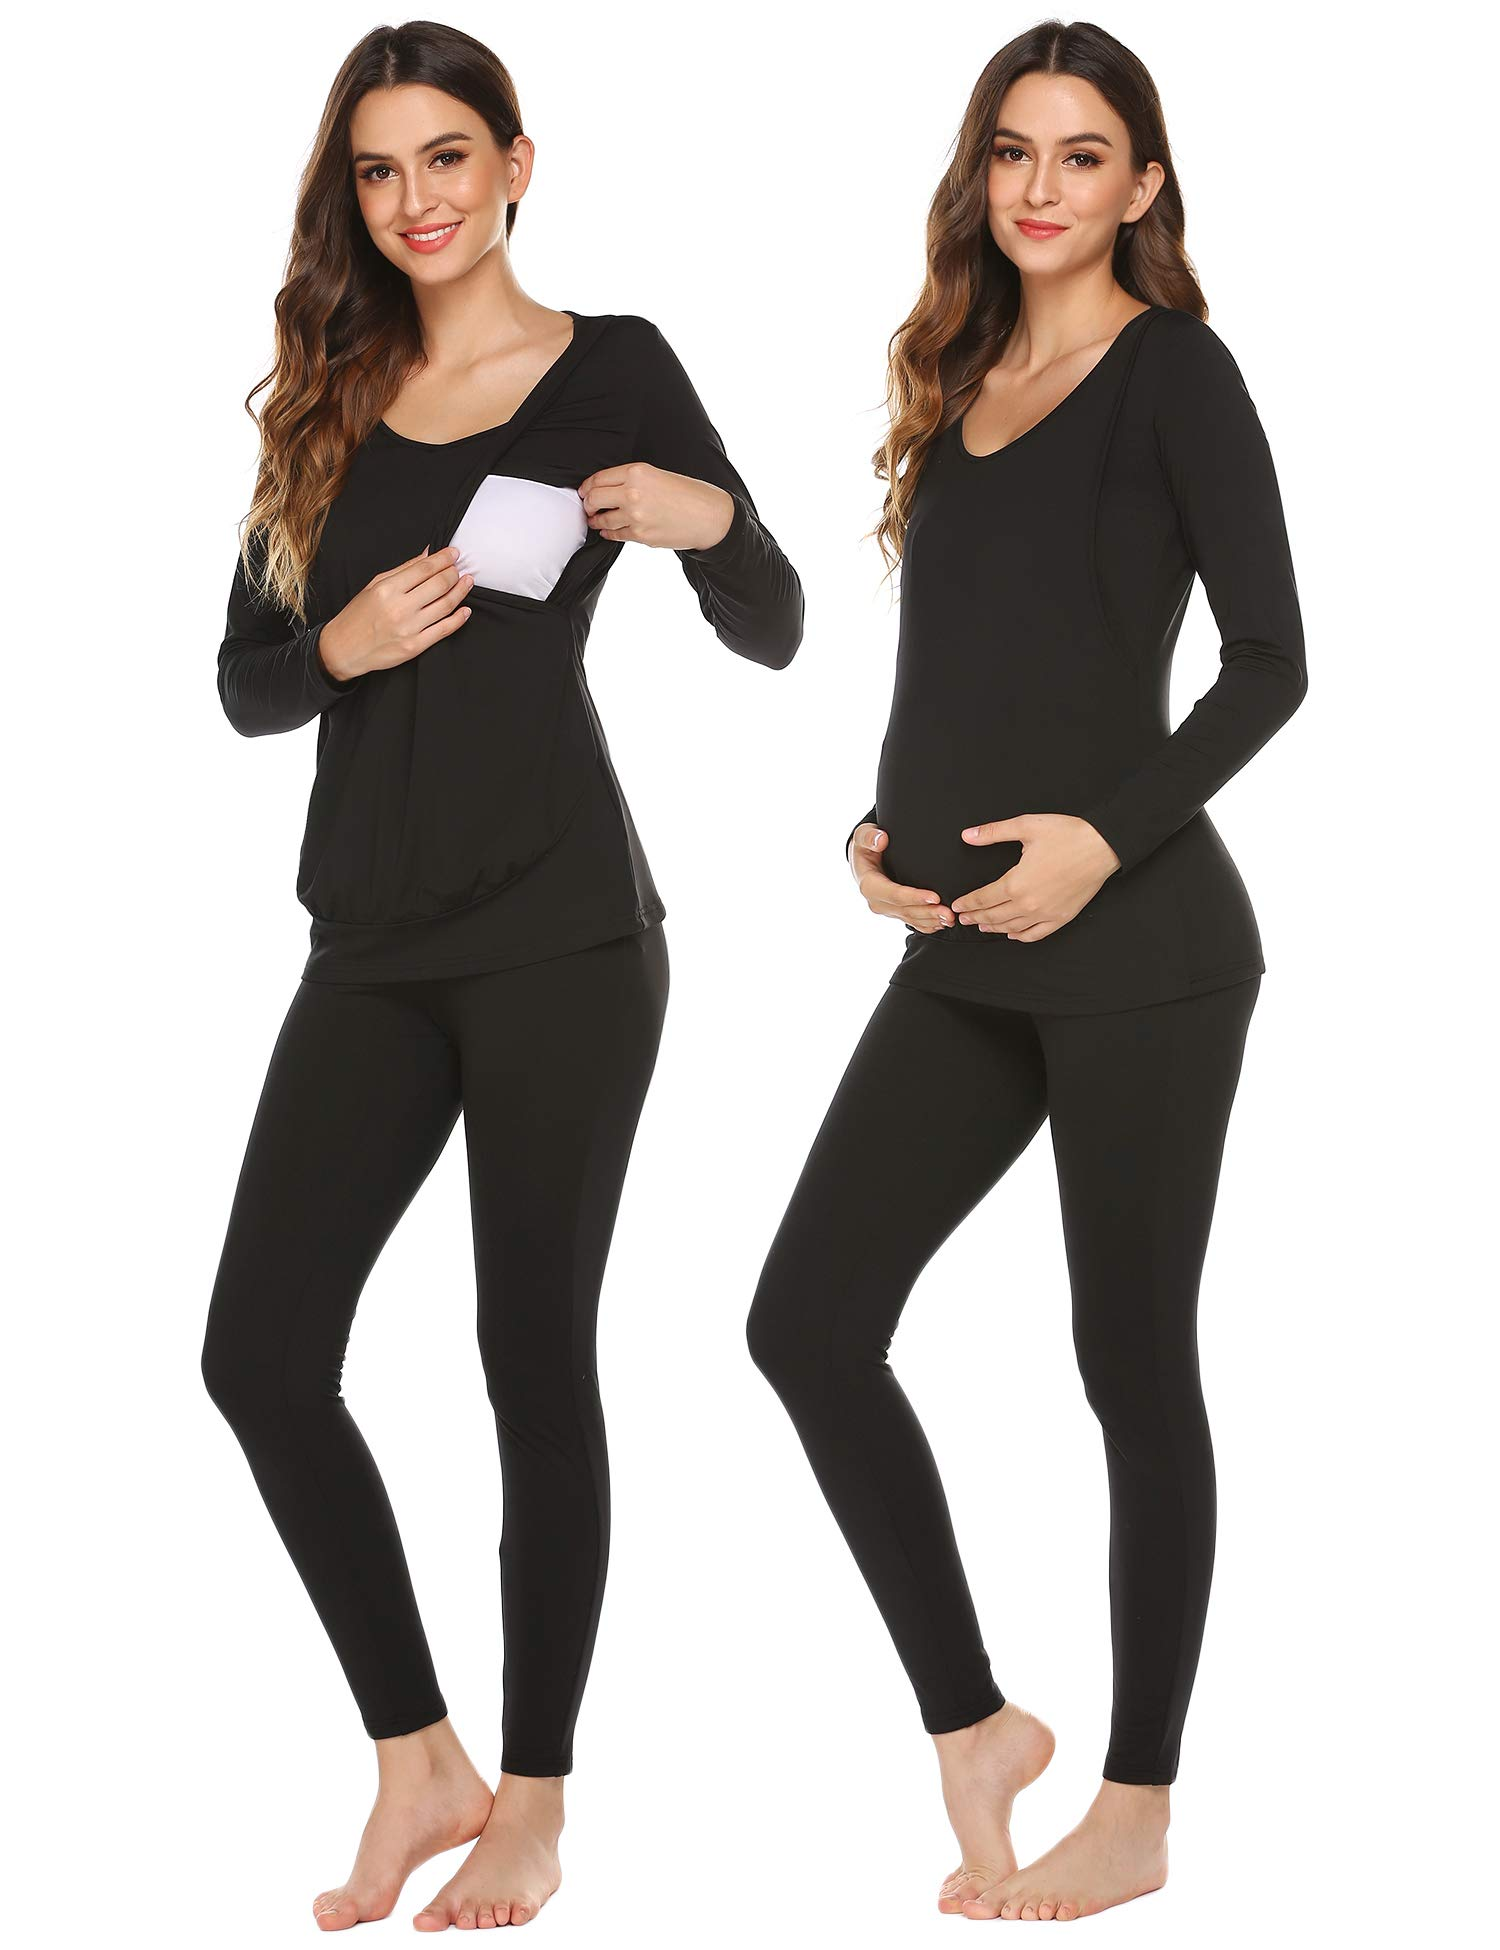 Ekouaer Maternity & Nursing Thermal Underwear Set Solid Color Pajamas Maternity Clothes for Women (Black, Large) by Ekouaer